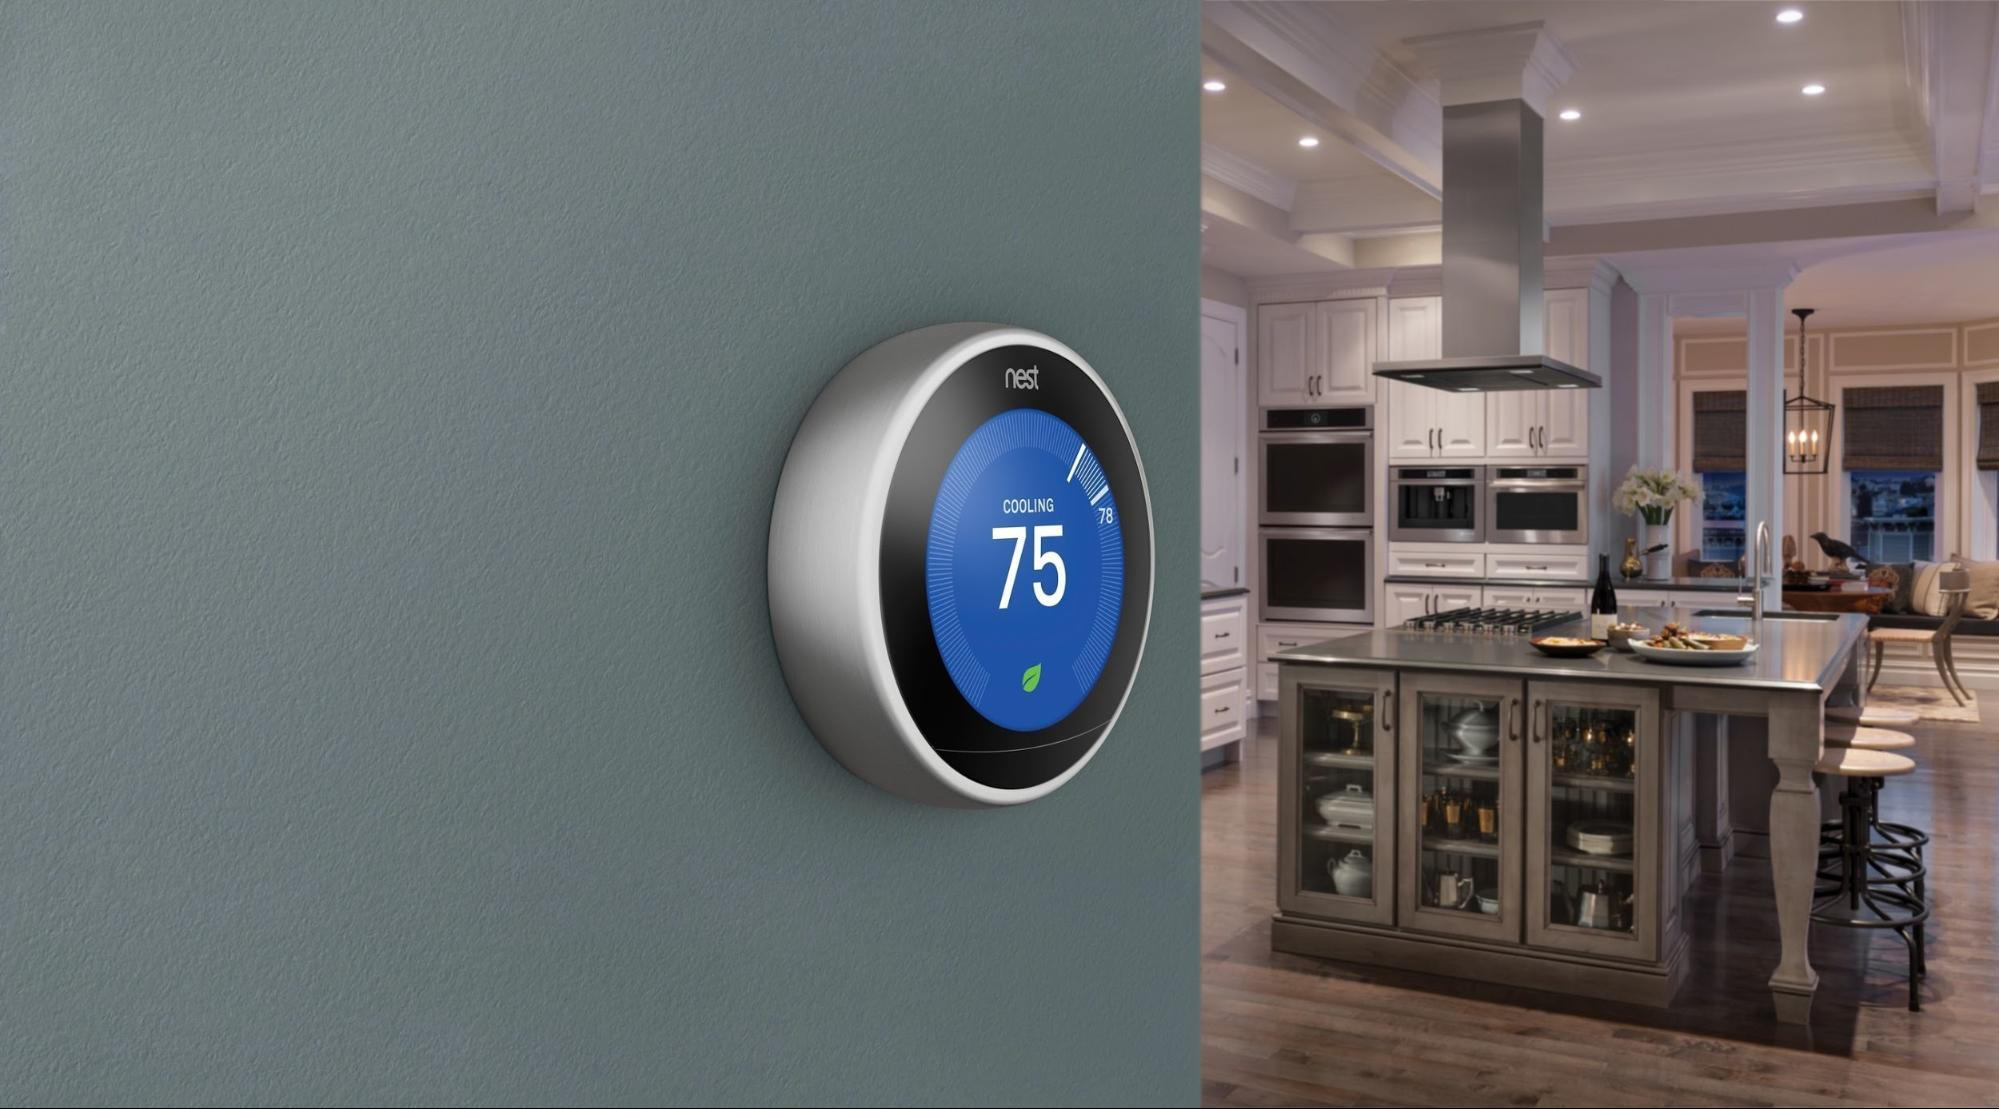 Nest Thermostat: Consider the user context